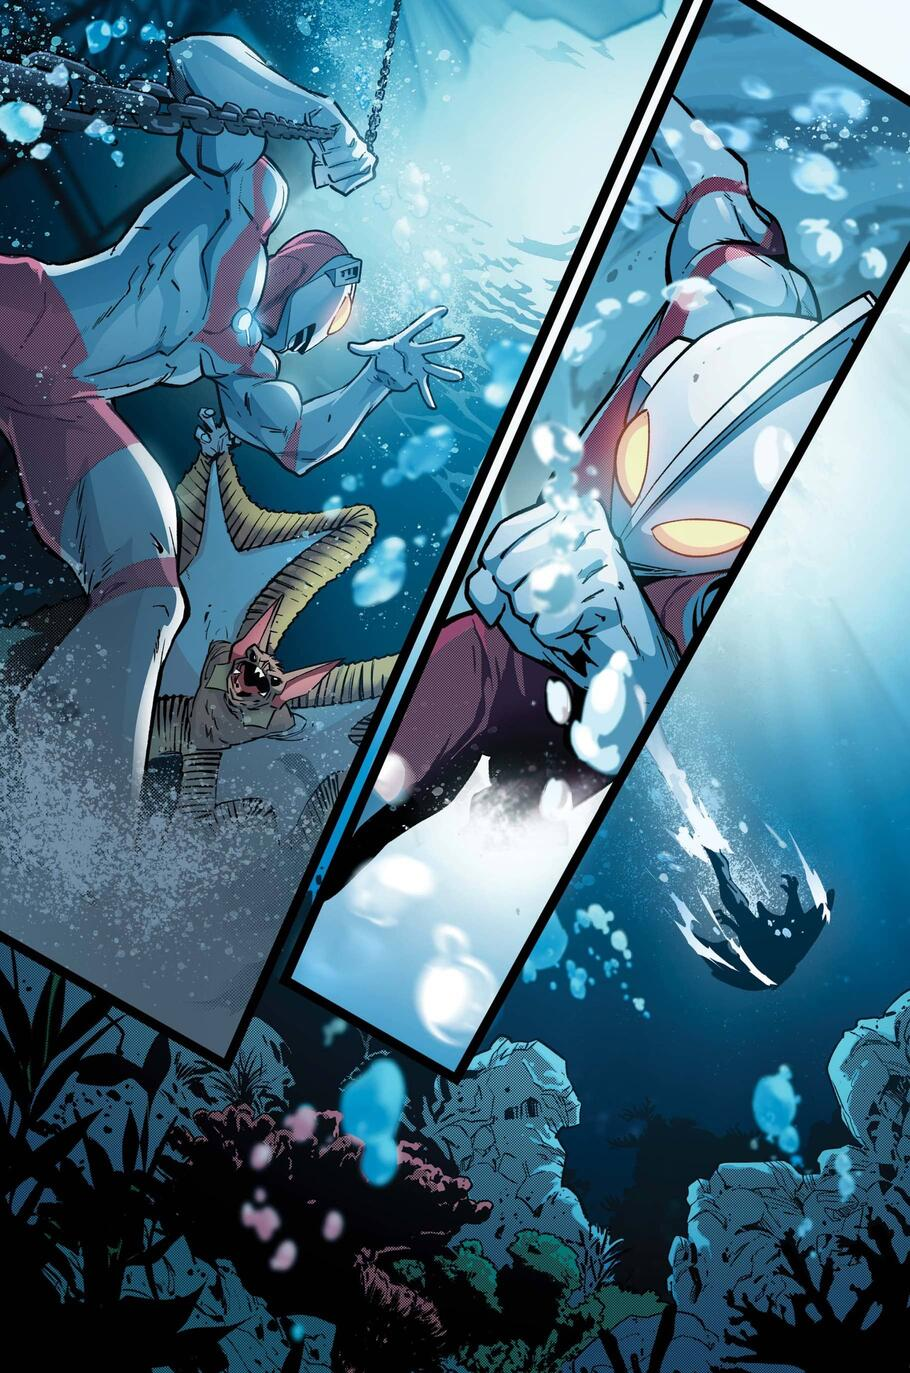 Shin Hayata  fights a monster of the deep in THE TRIALS OF ULTRAMAN (2021) #1.